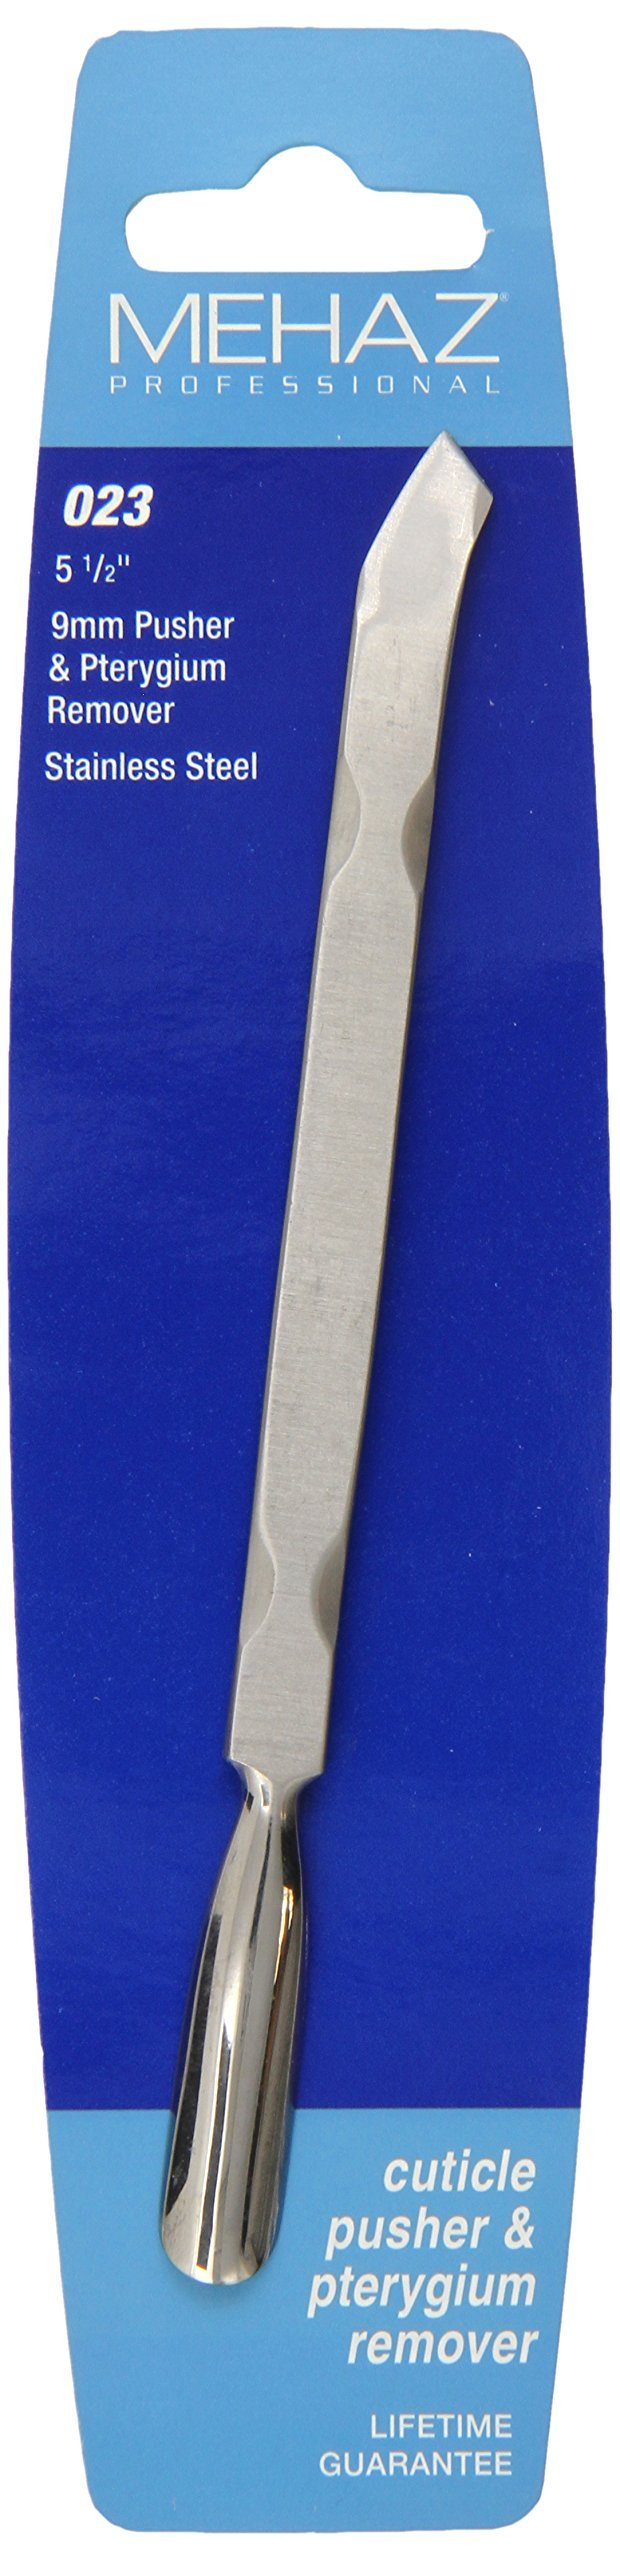 Mehaz Professional Cuticle Pusher and Pterygium Remover by Mehaz Professional